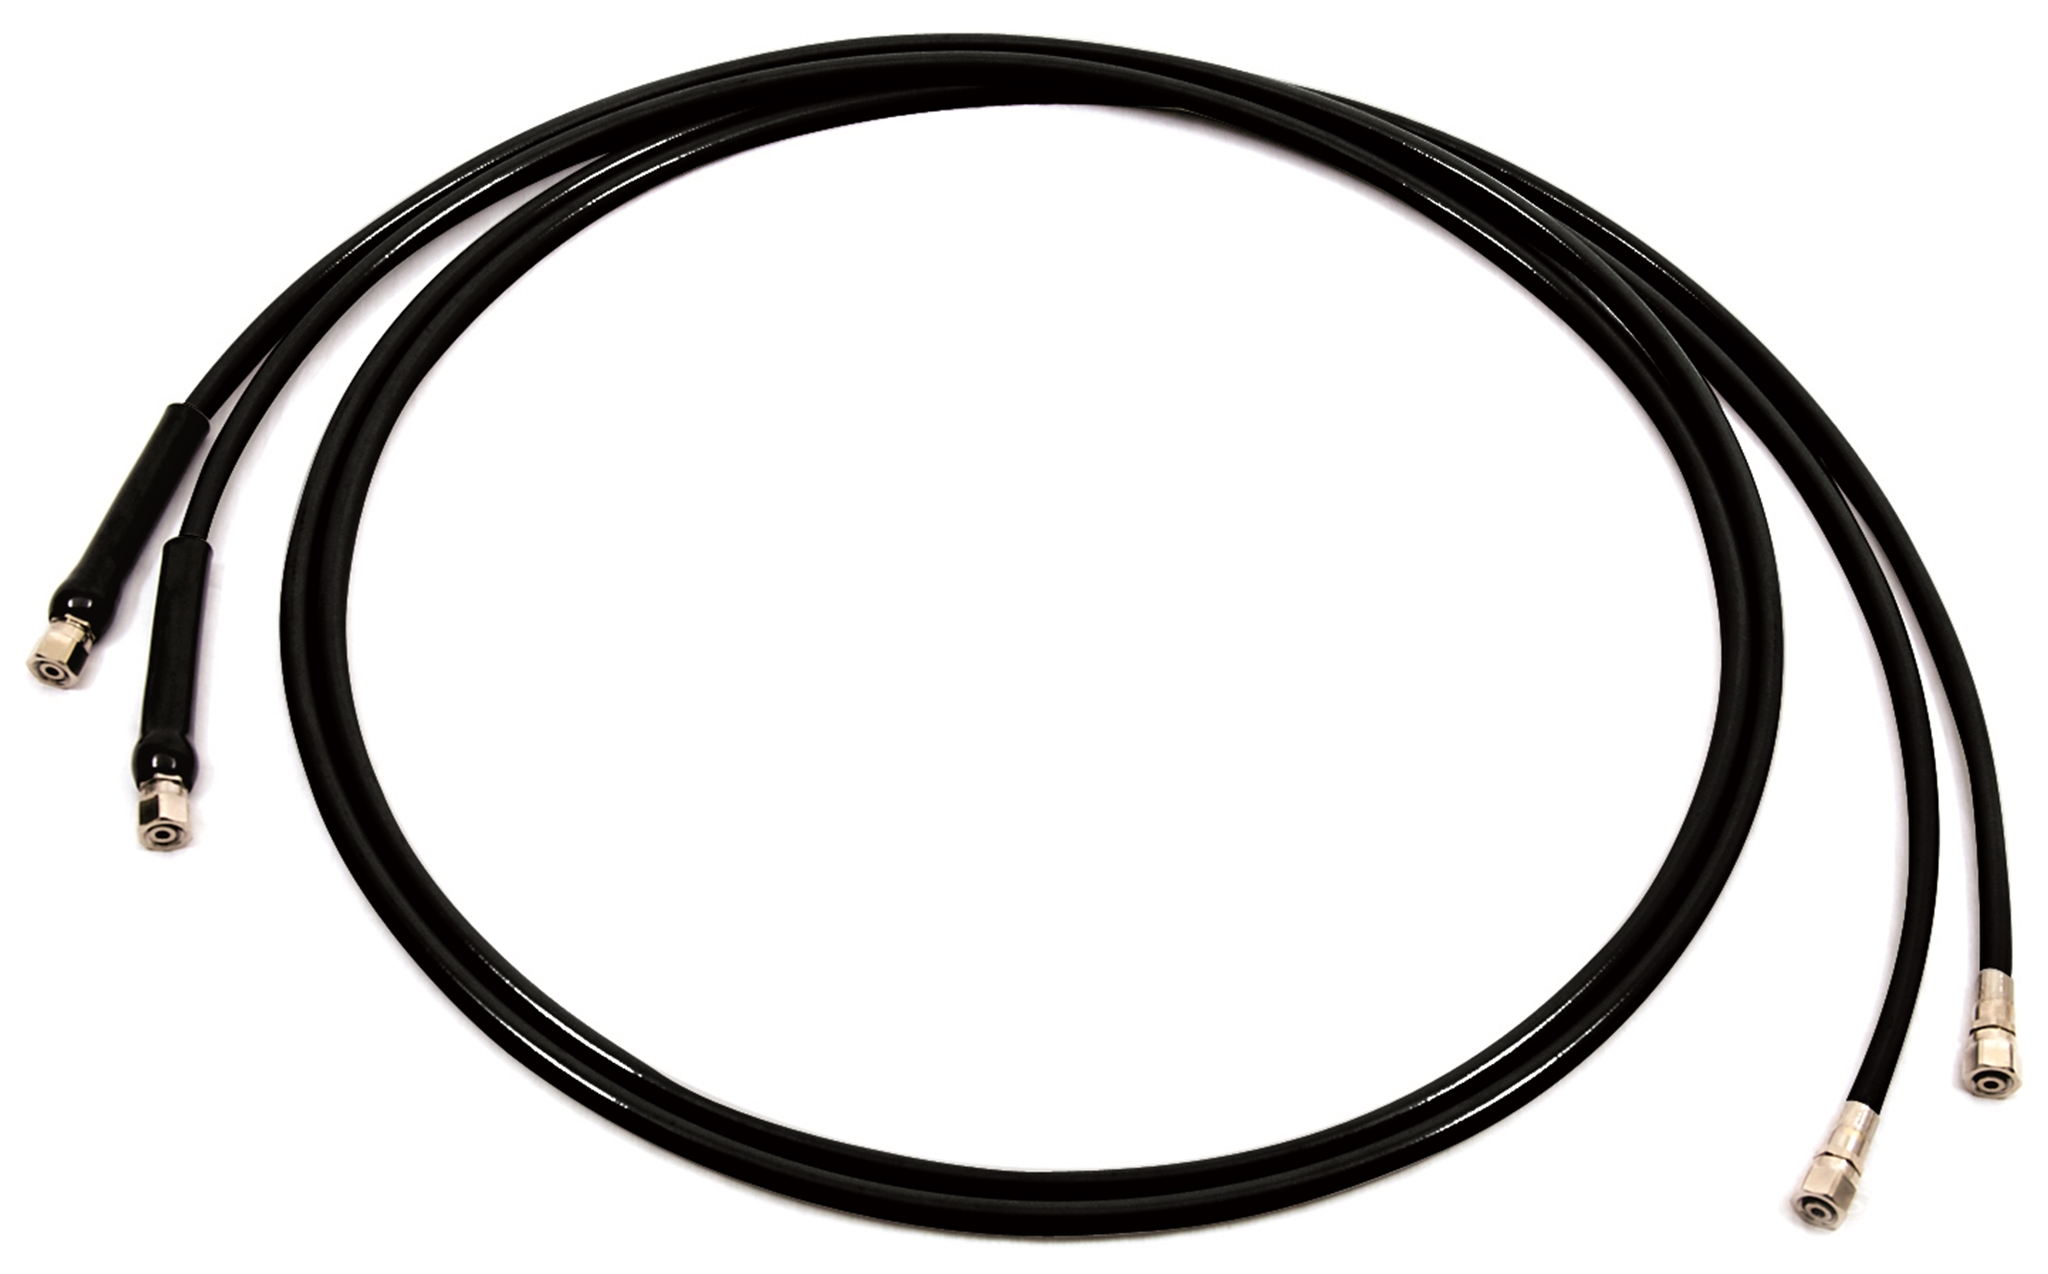 KITOBSVS-34 Ft Silversteer Hose Kit With Bend Restrictors